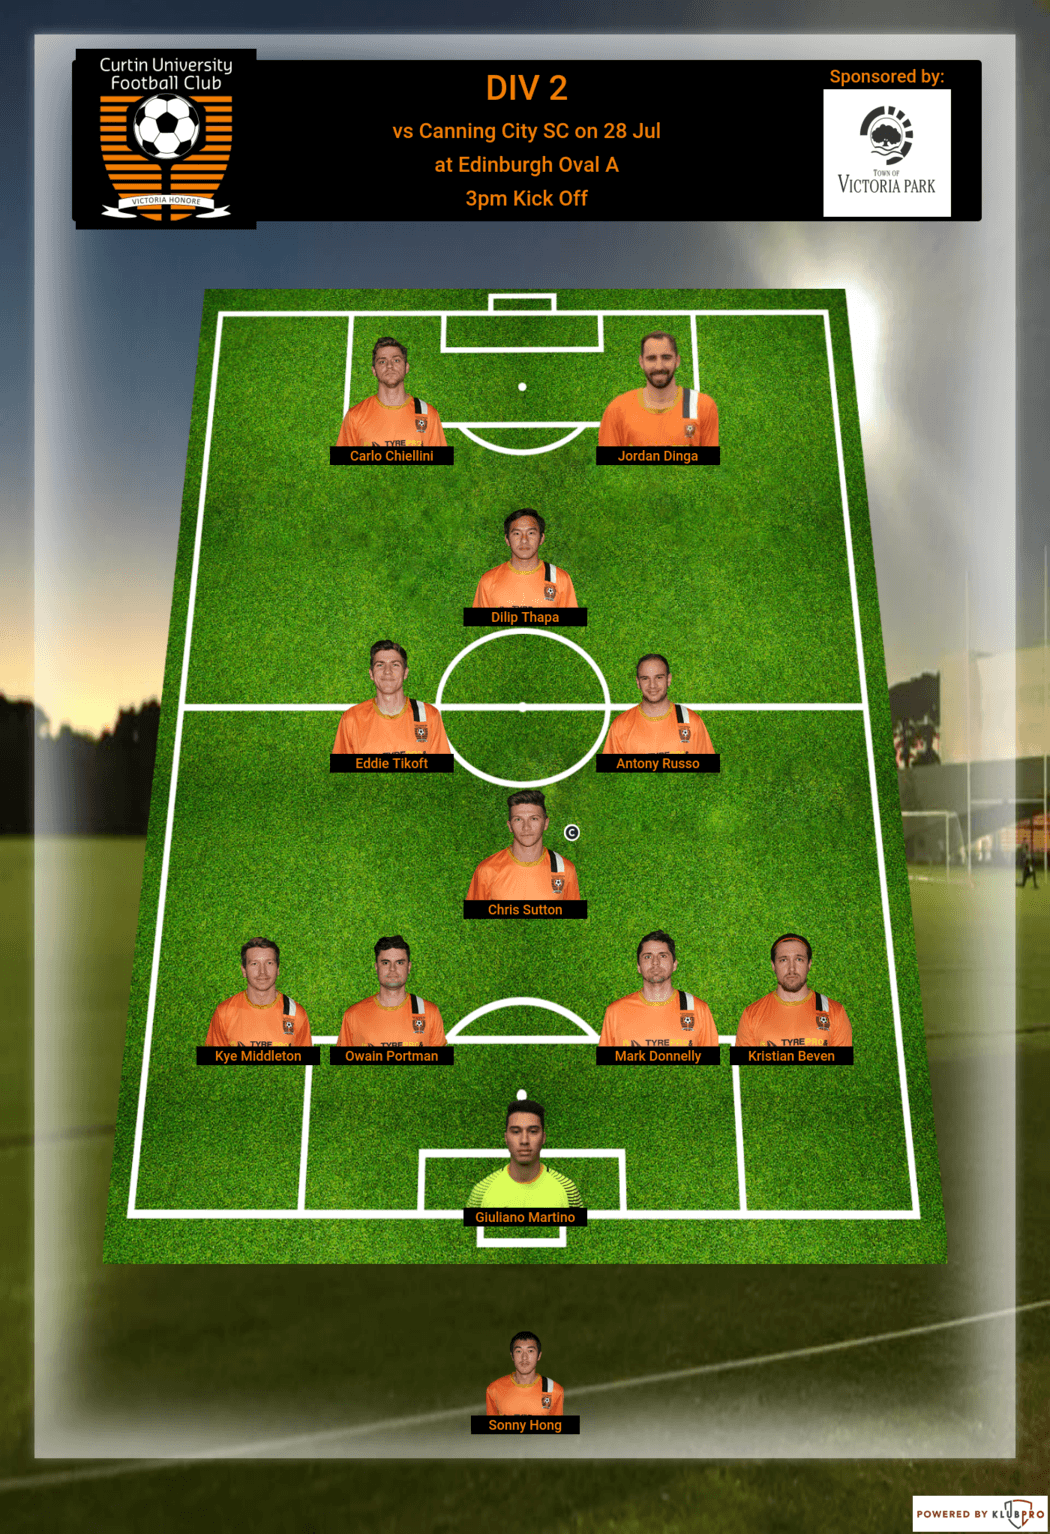 Curtin University FC-team-lineup-DIV 2-Round 15-1552454334974 (1).png